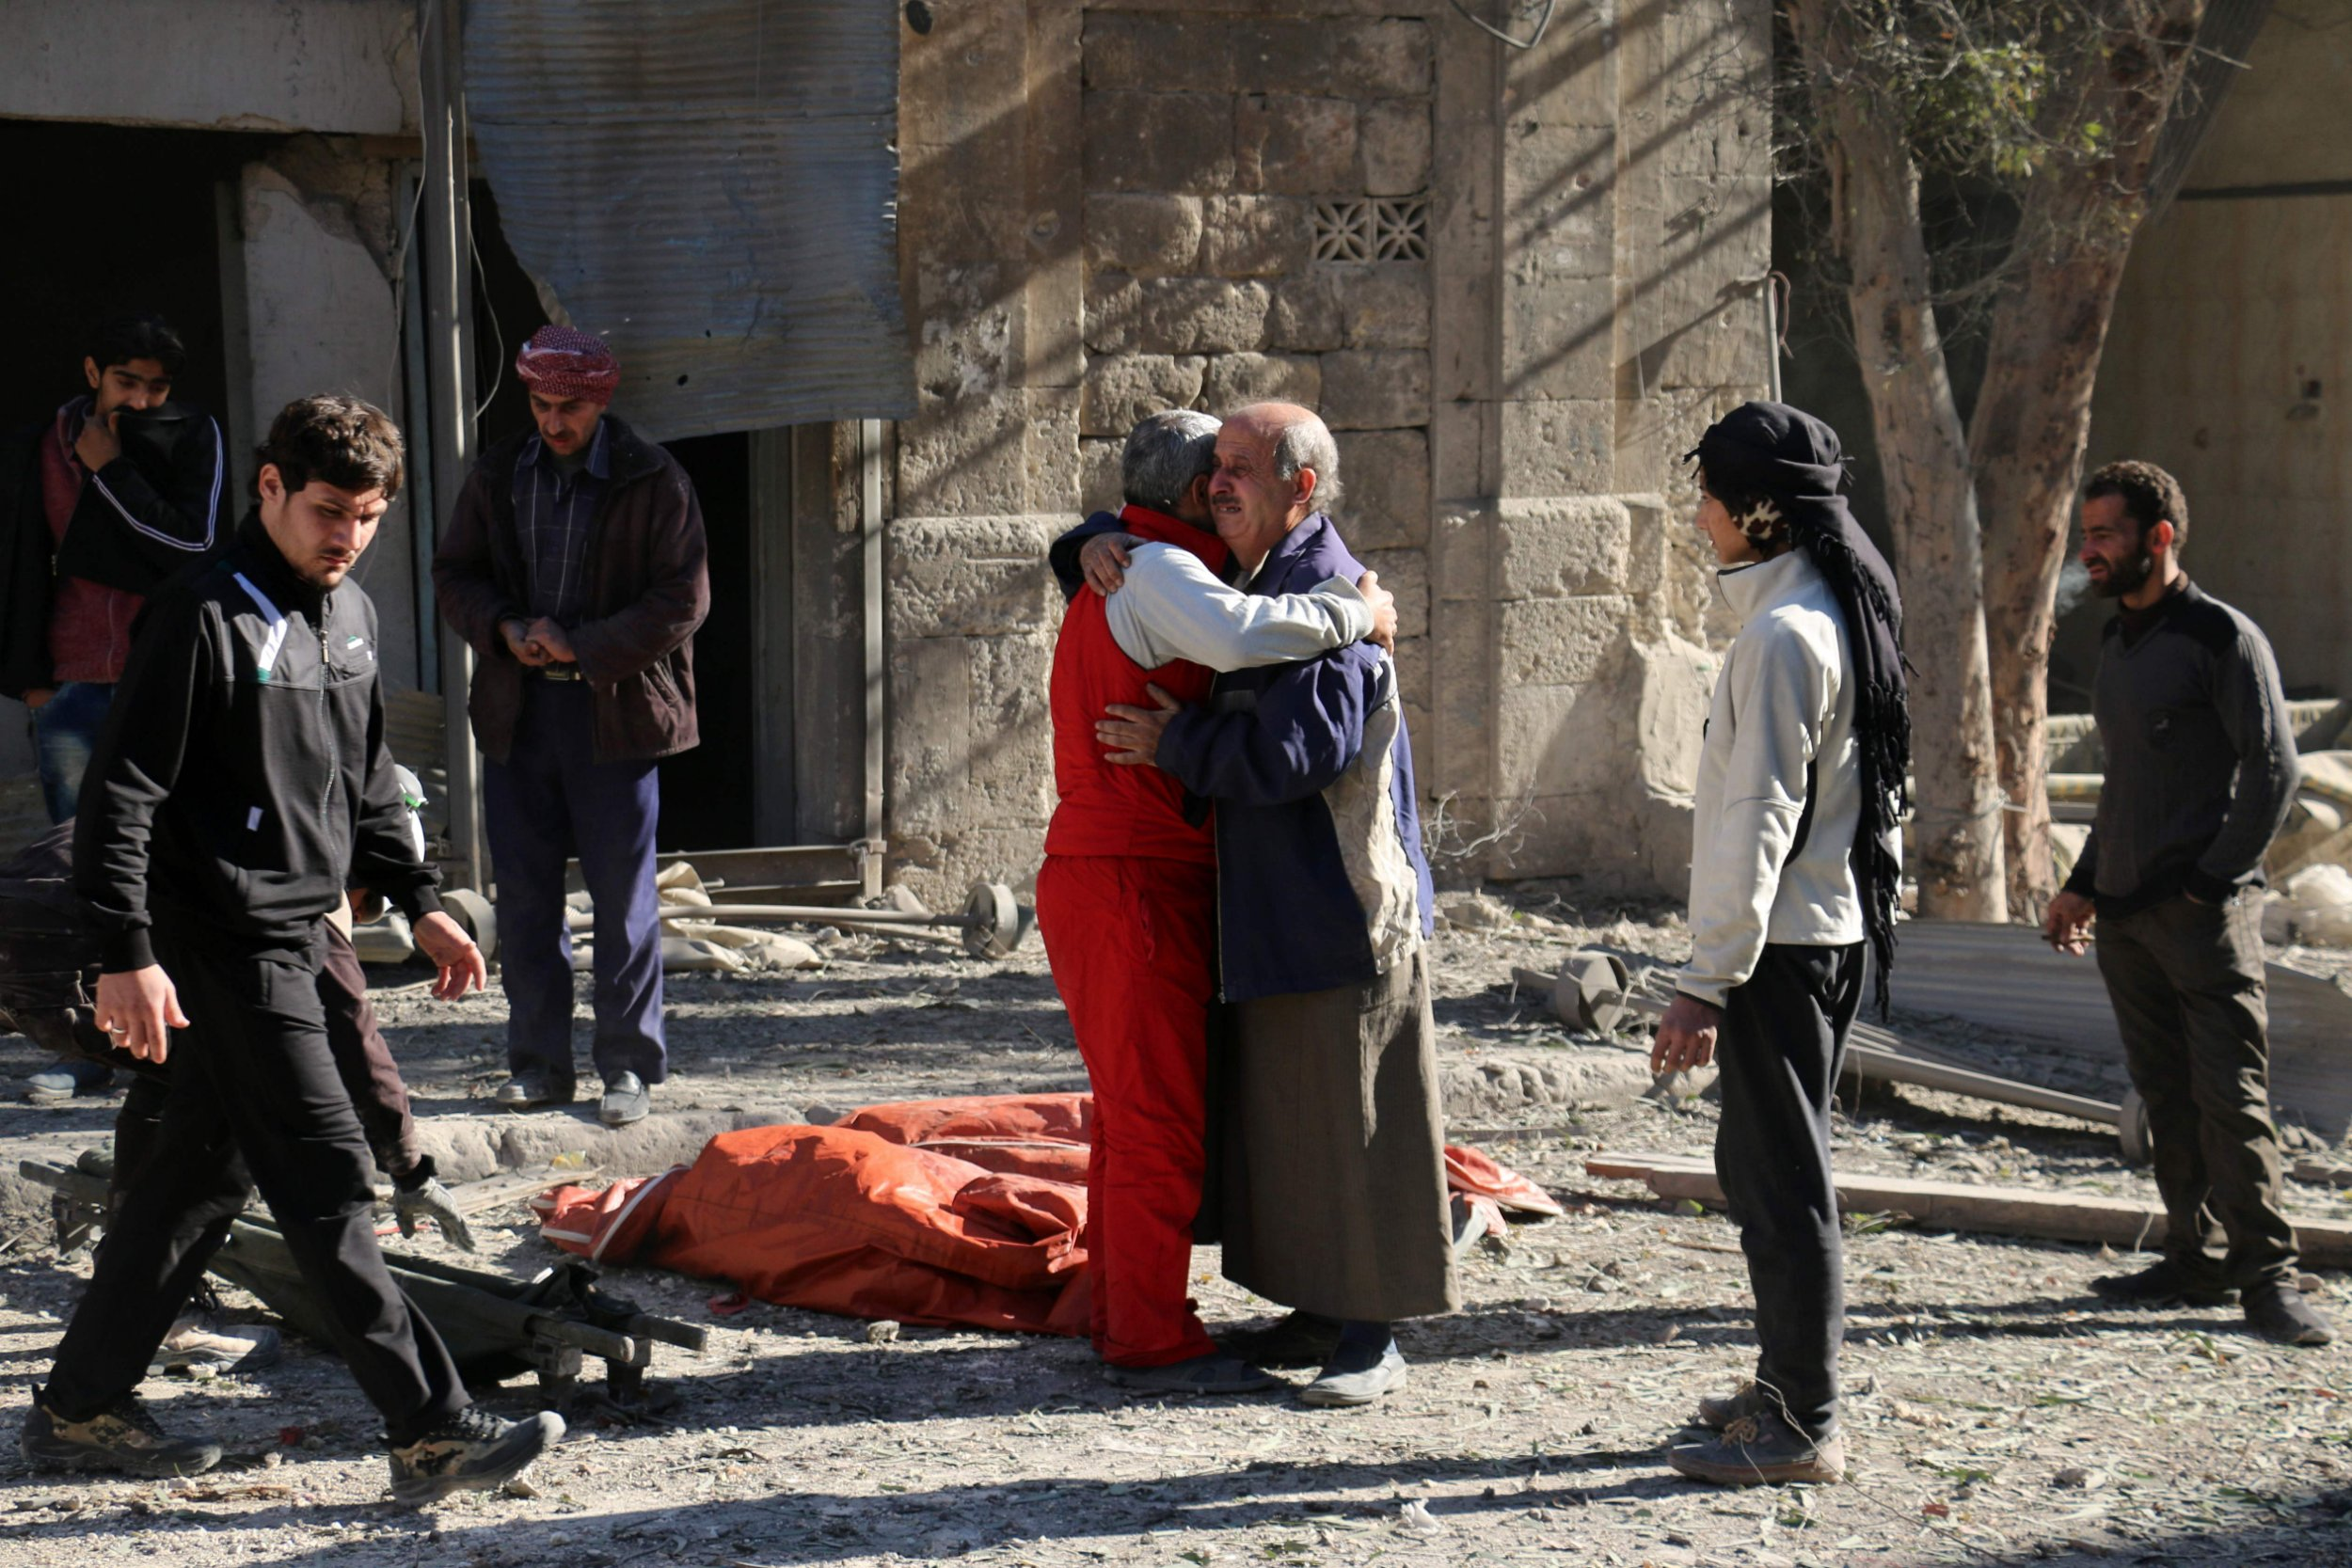 Aleppo's last working hospital has been completely destroyed by airstrikes